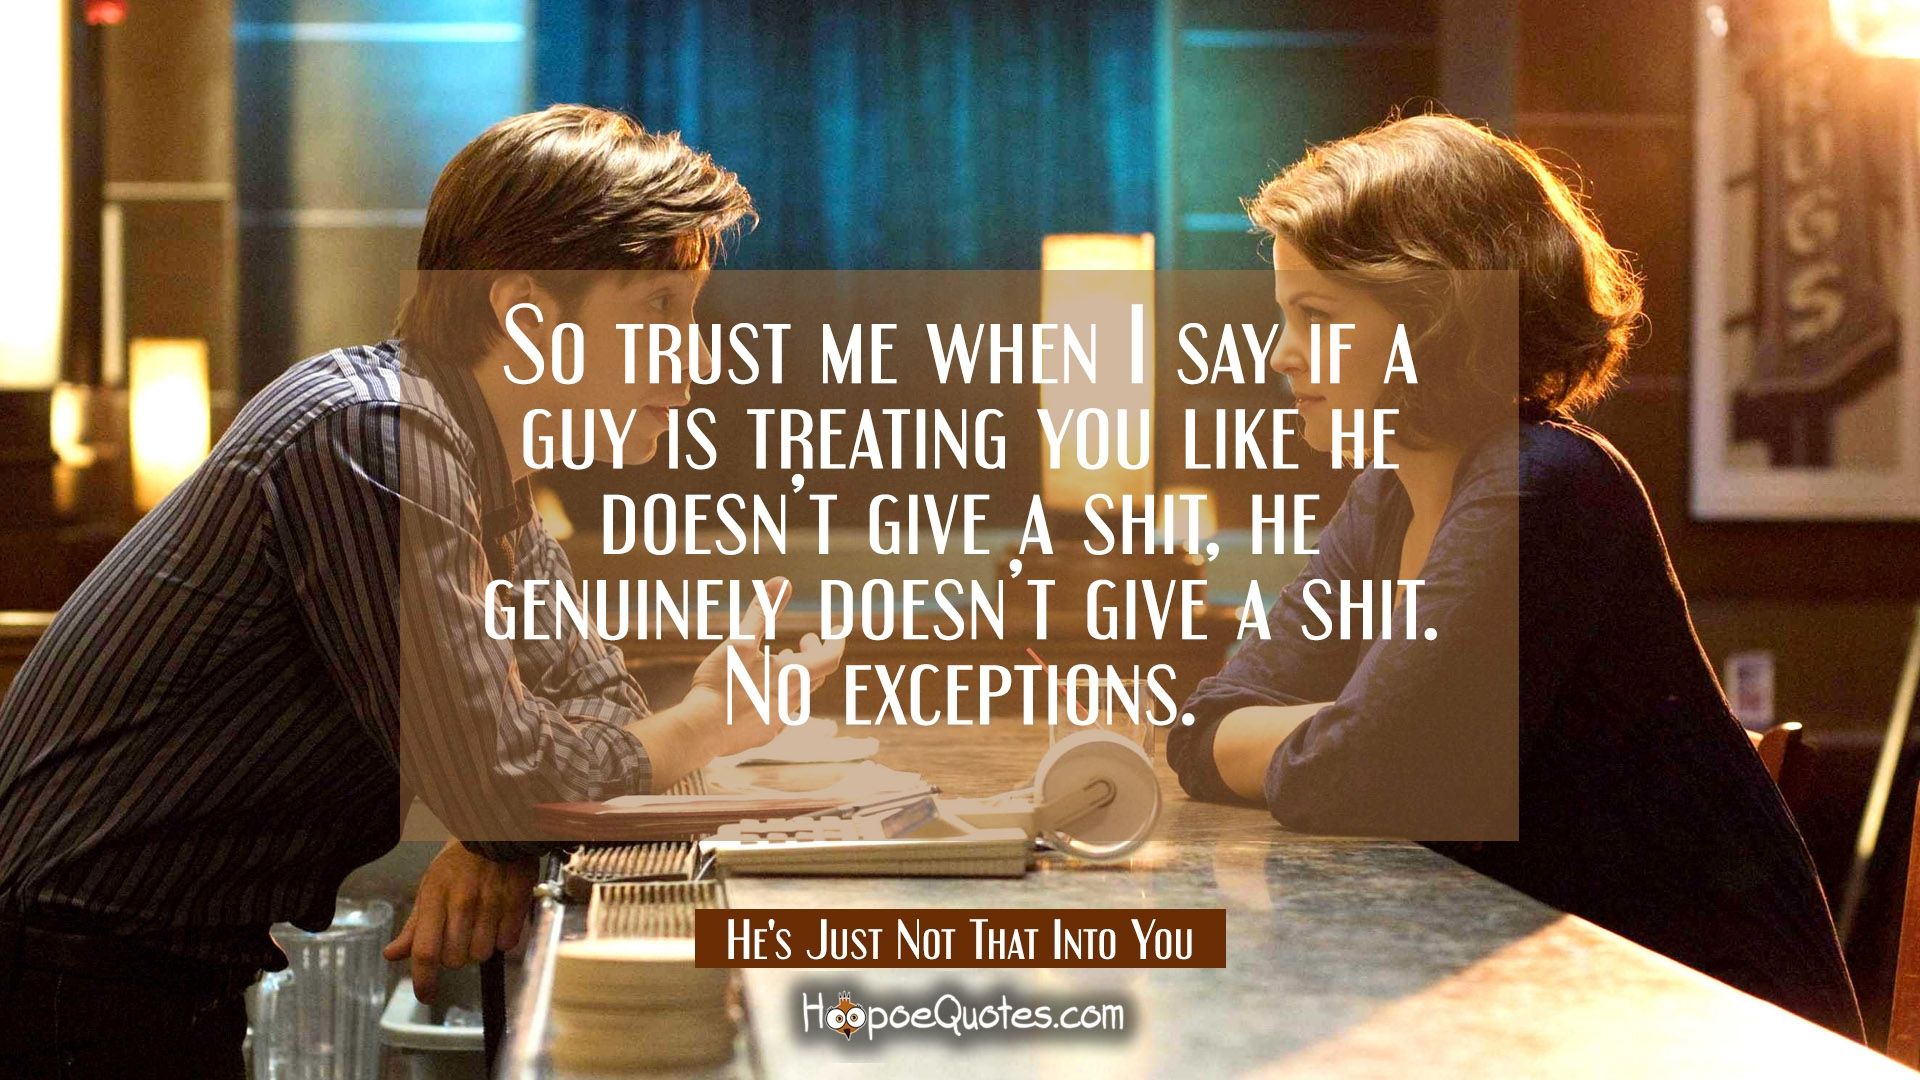 So trust me when I say if a guy is treating you like he